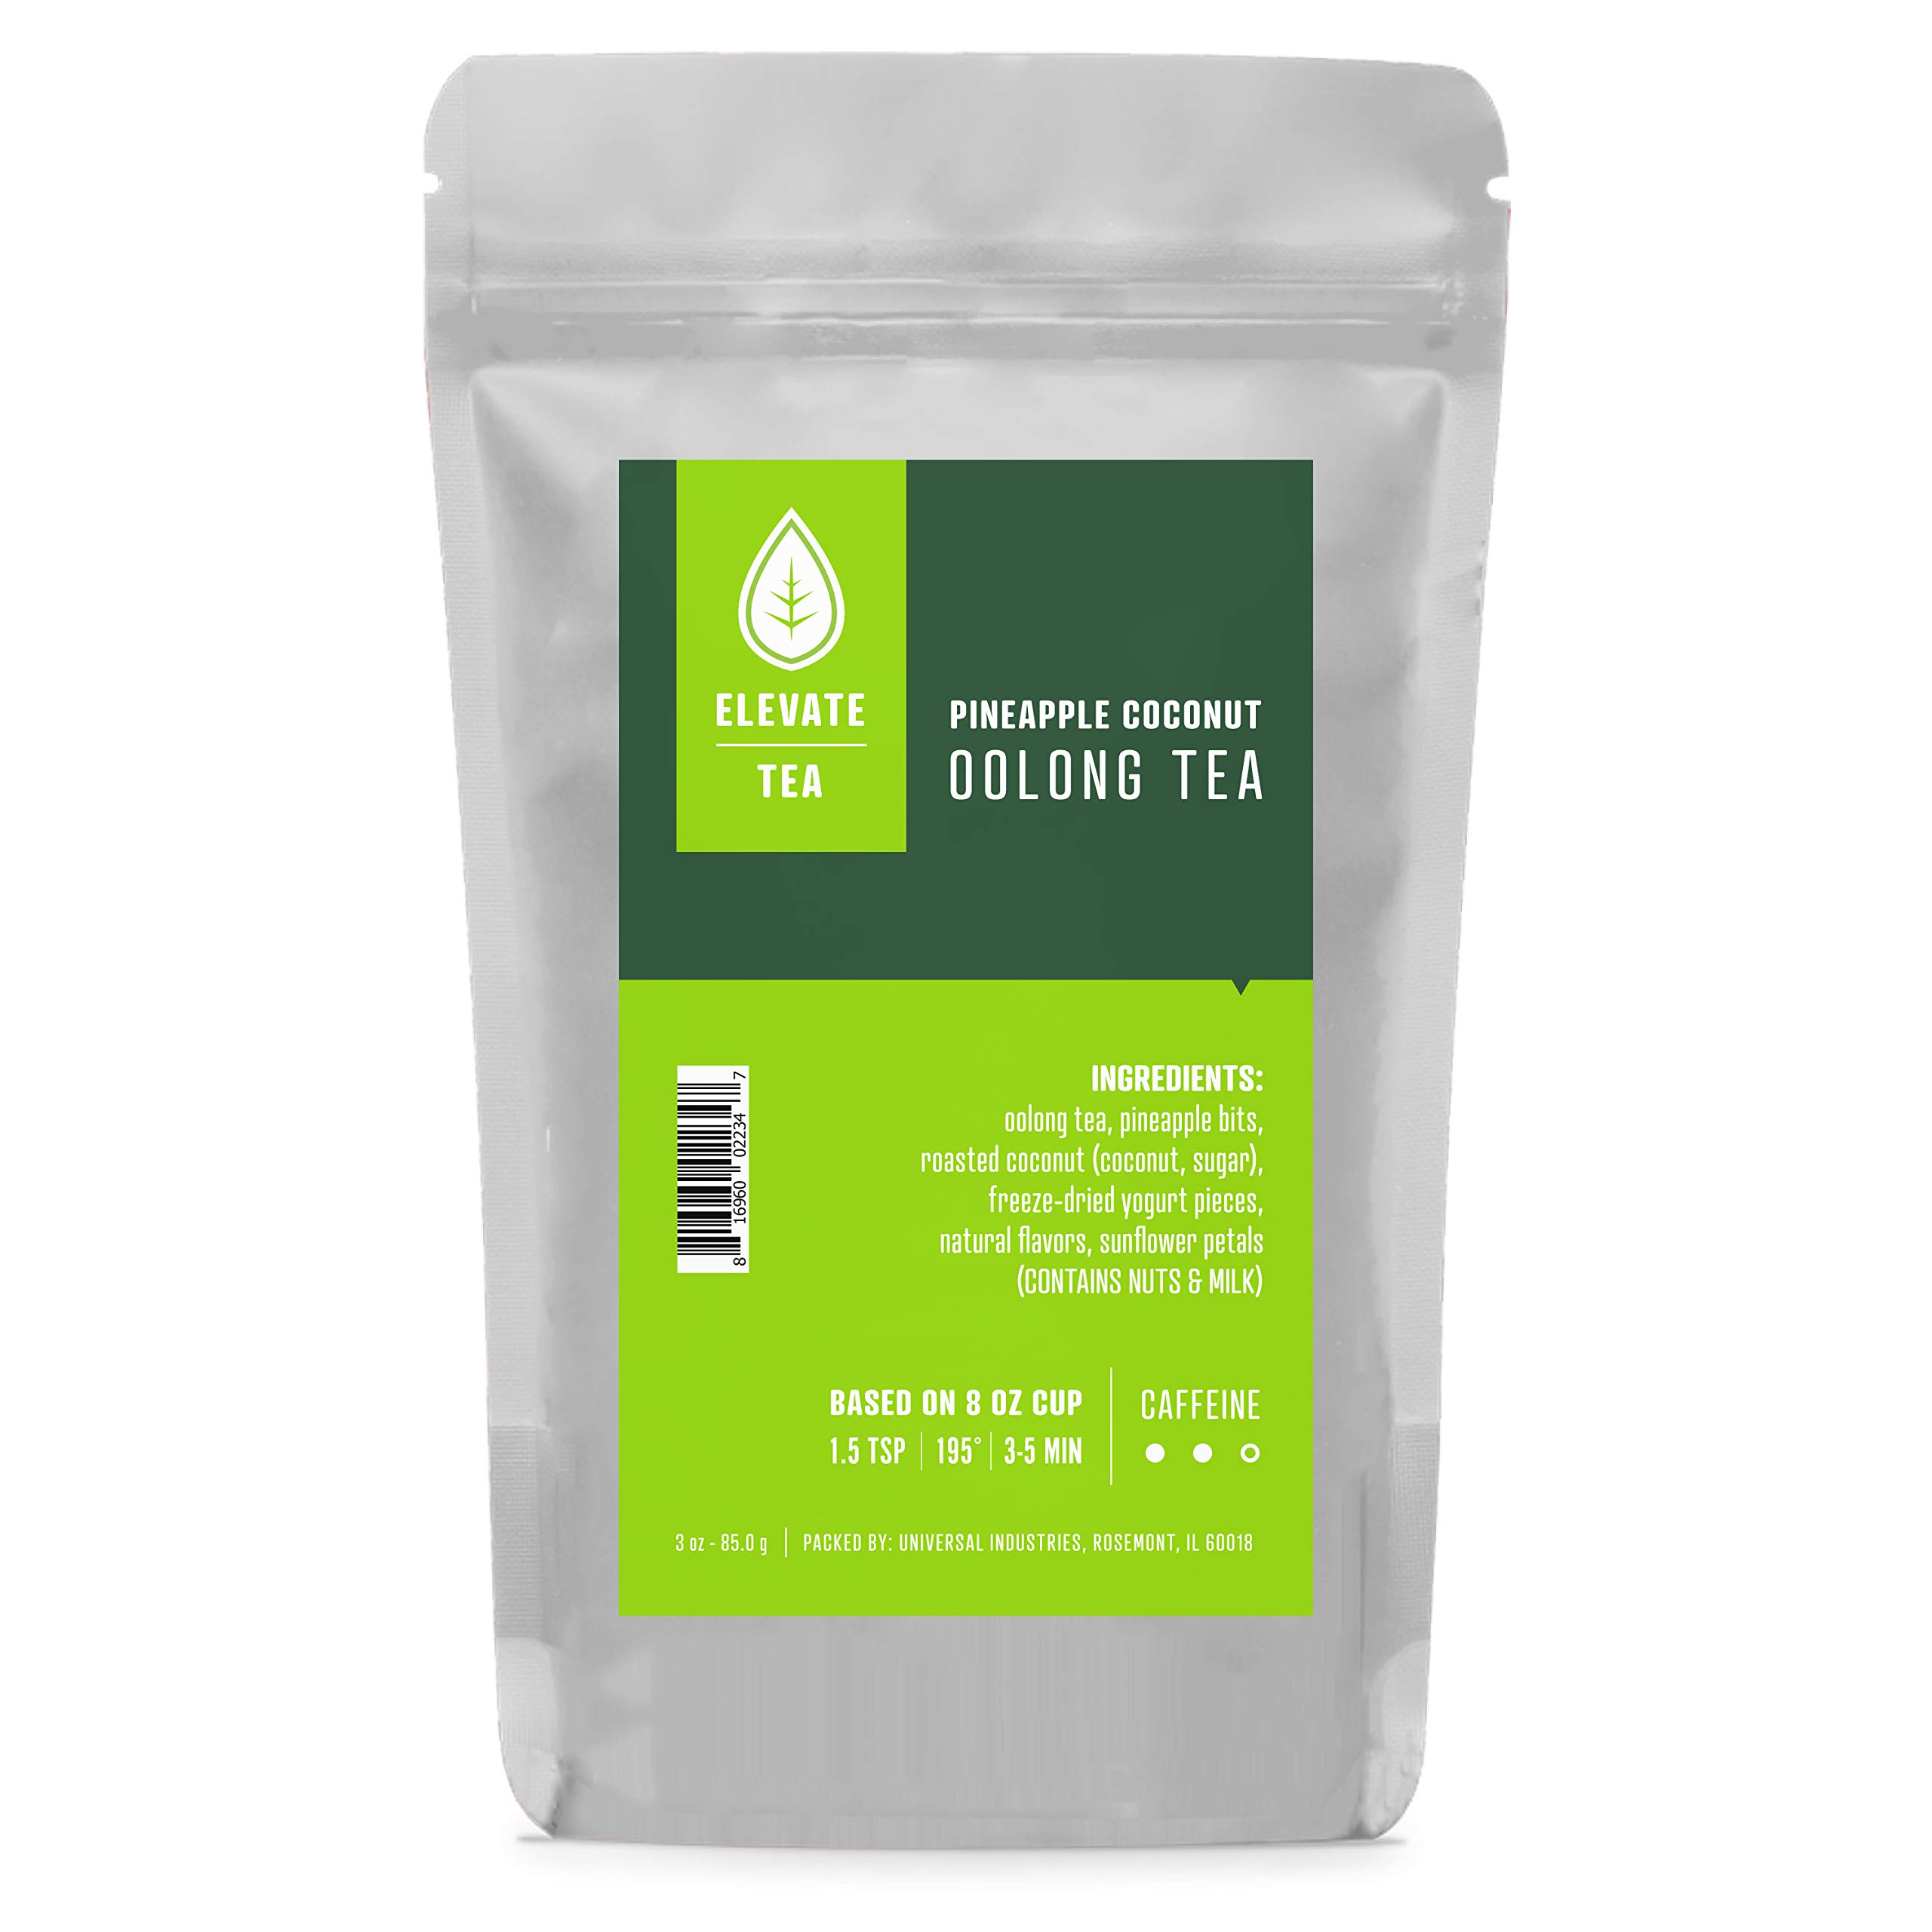 Elevate Tea PINEAPPLE COCONUT OOLONG TEA, 30 servings, 3 Ounce Pouch, Caffeine Level: Medium